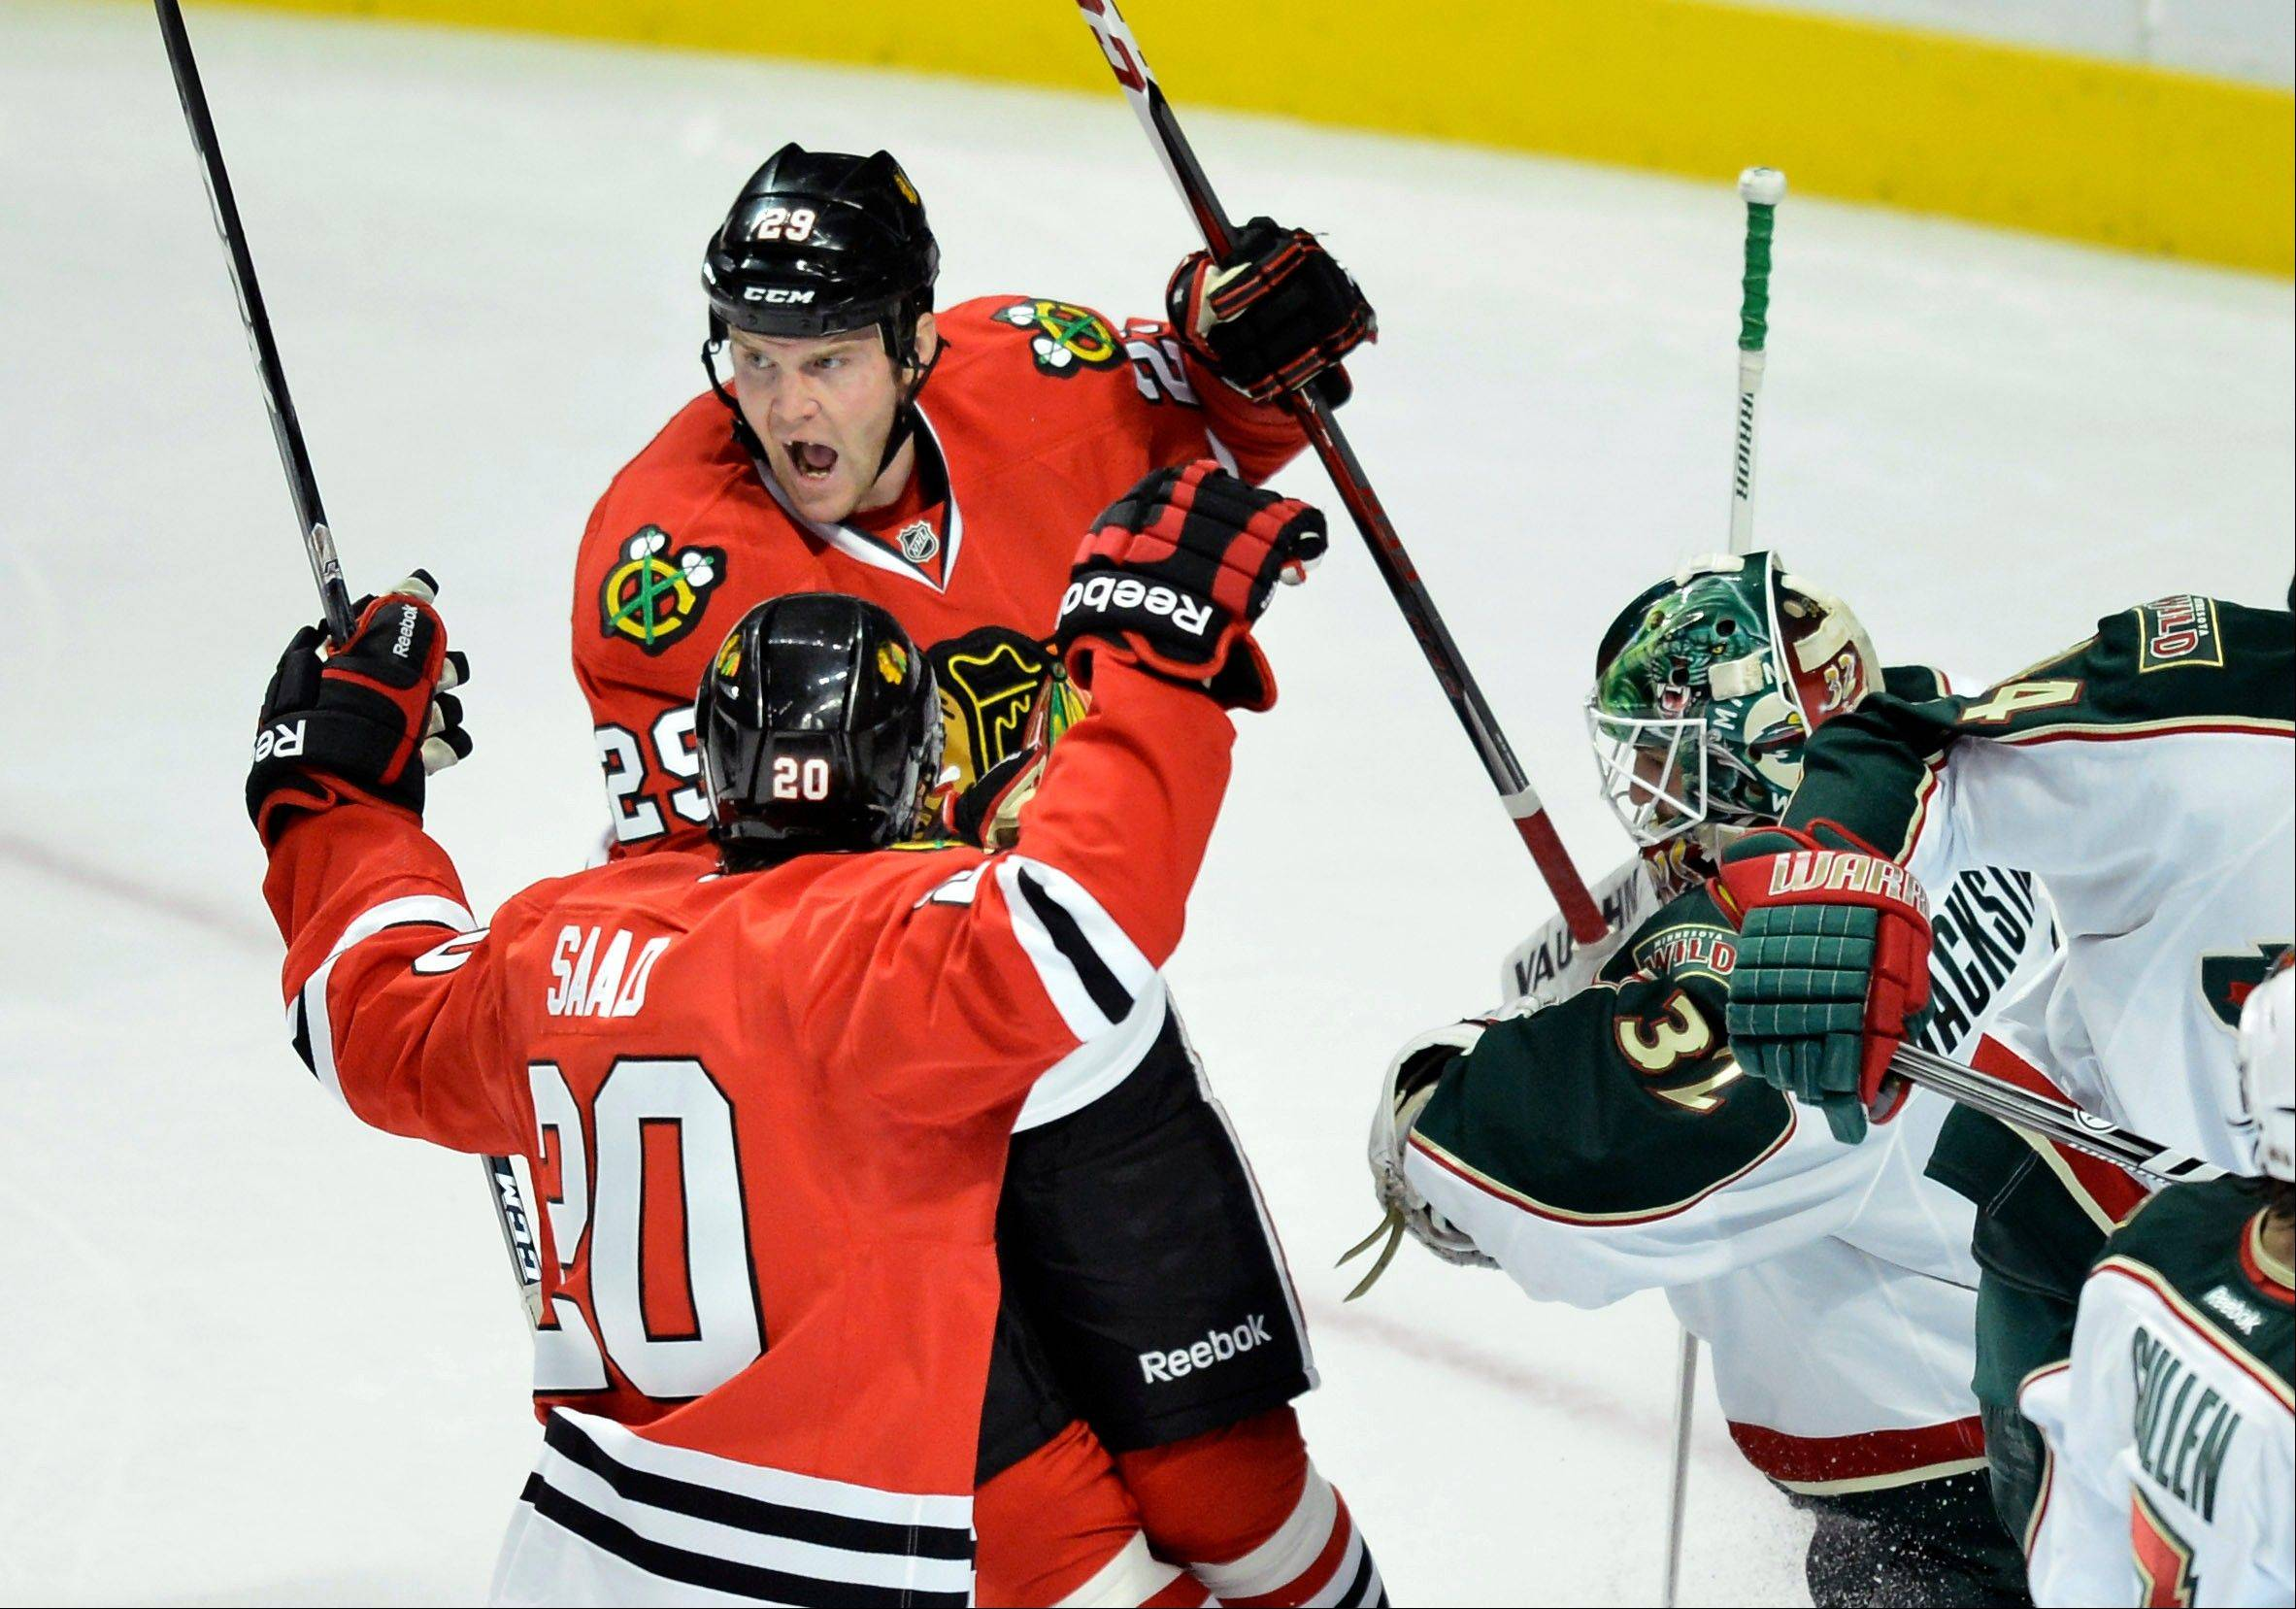 Chicago Blackhawks wingers Bryan Bickell and Brandon Saad, left, celebrate after Bickell scored past Minnesota Wild goalie Niklas Backstrom, left, during the first period